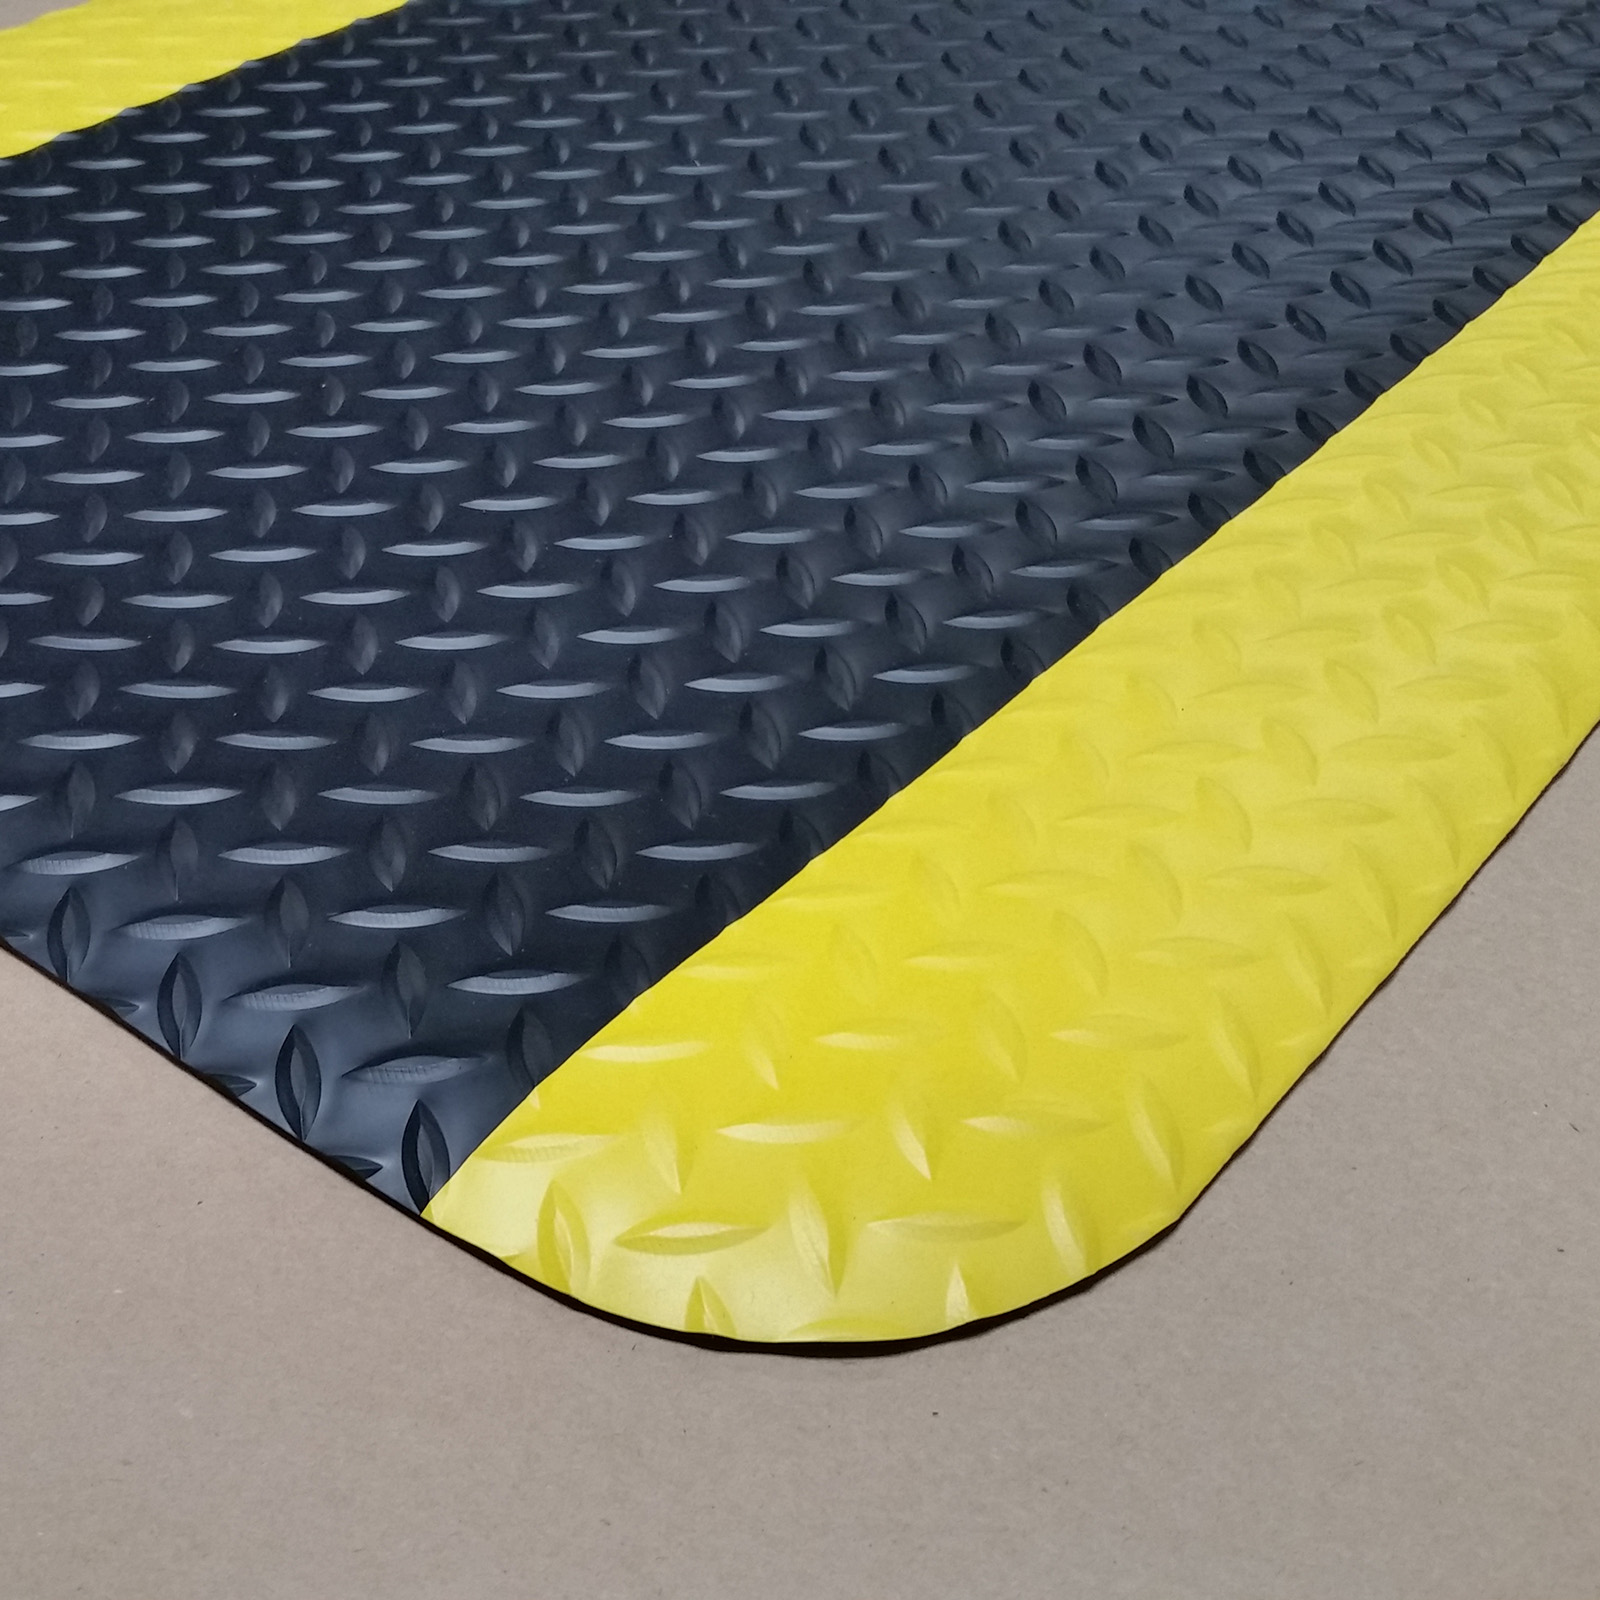 Cactus Mat 1053F-3 floor mat, anti-fatigue